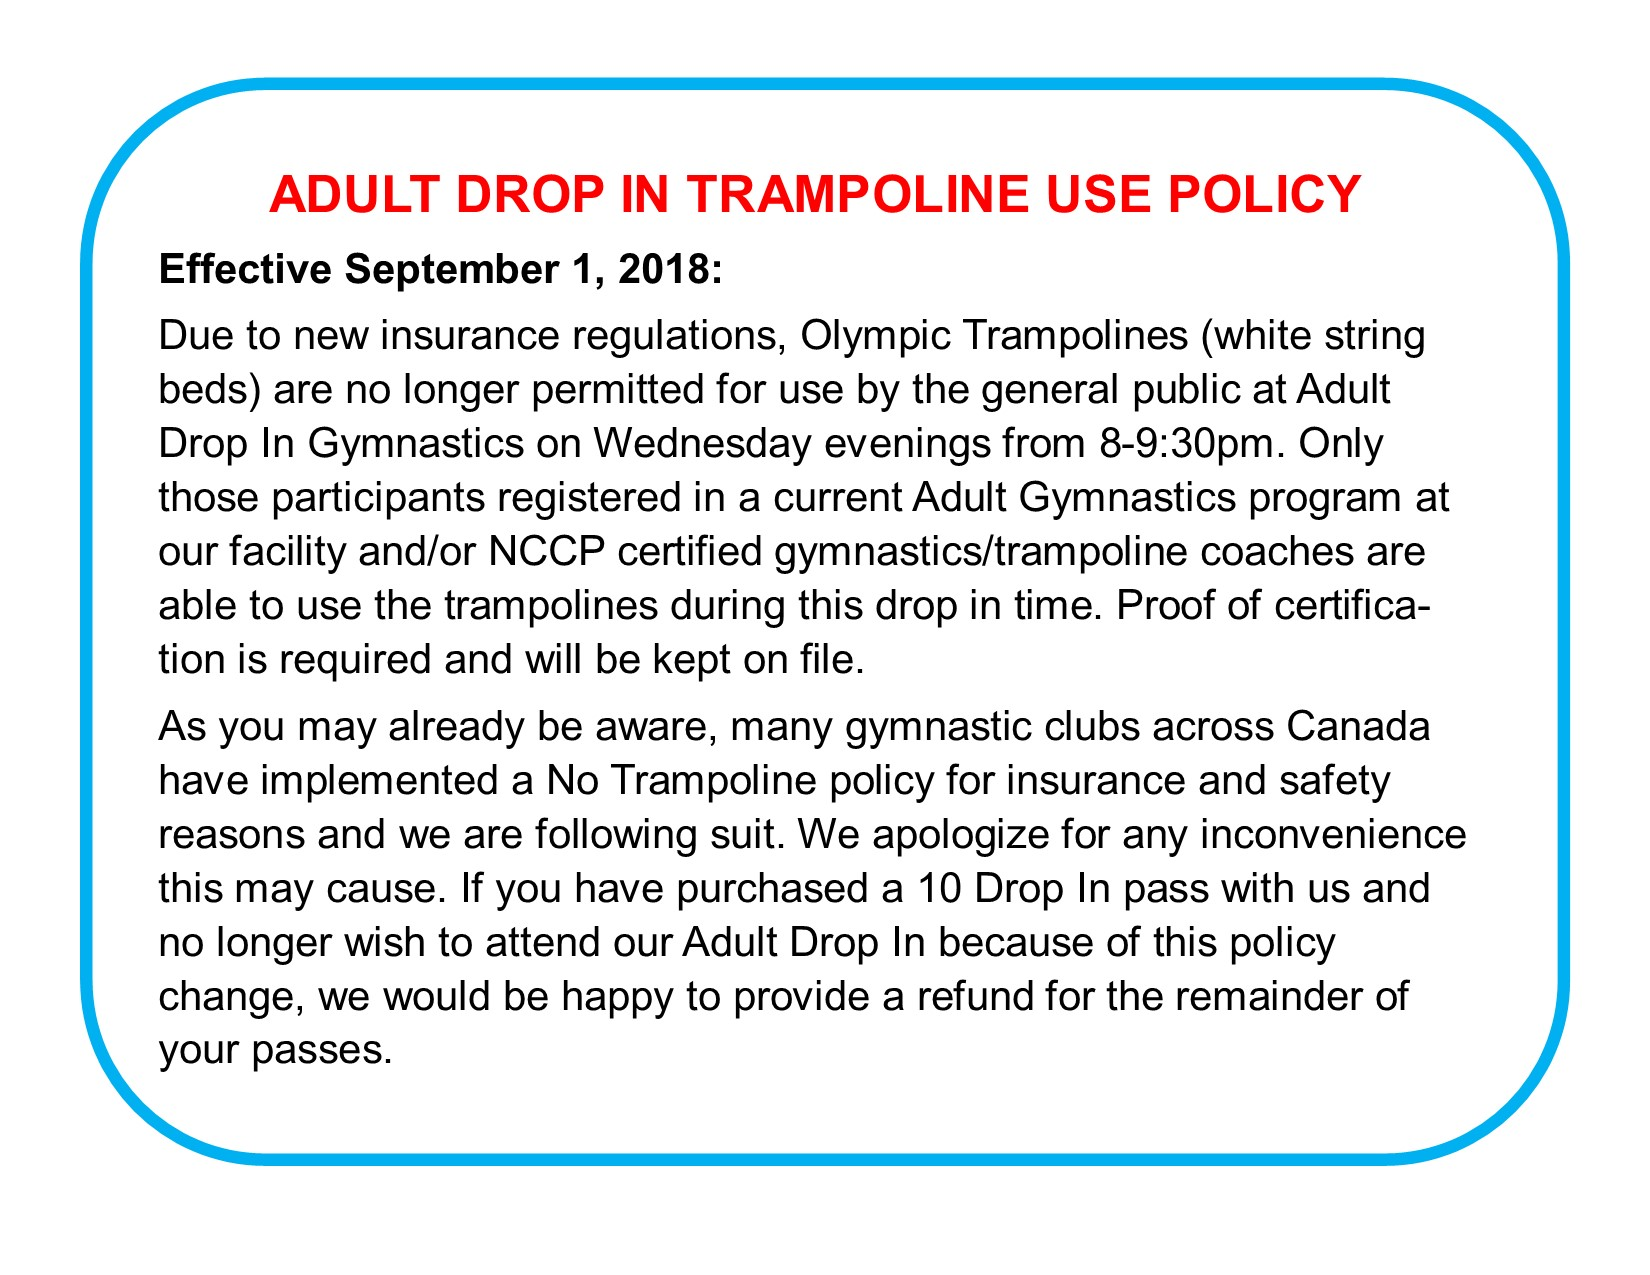 Adult Drop In Trampoline Policy Change